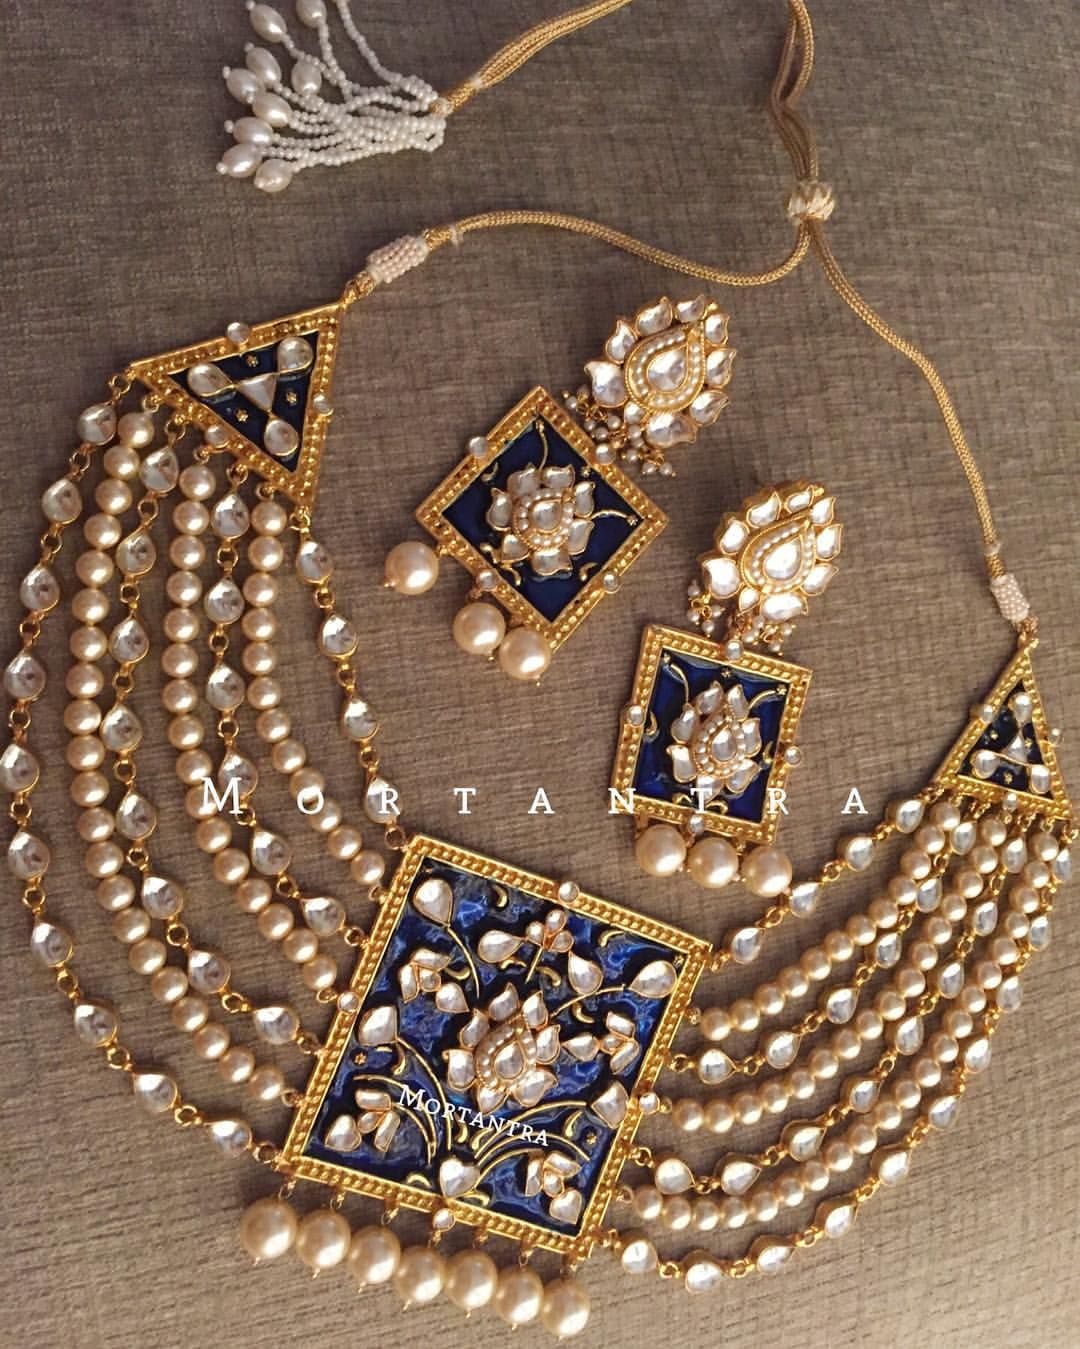 fc22e6f27 ... This is surely more than just jewellery! Its regal, its grand, its  royal and its beauty ! The magnificent blue meenakari block necklace ...